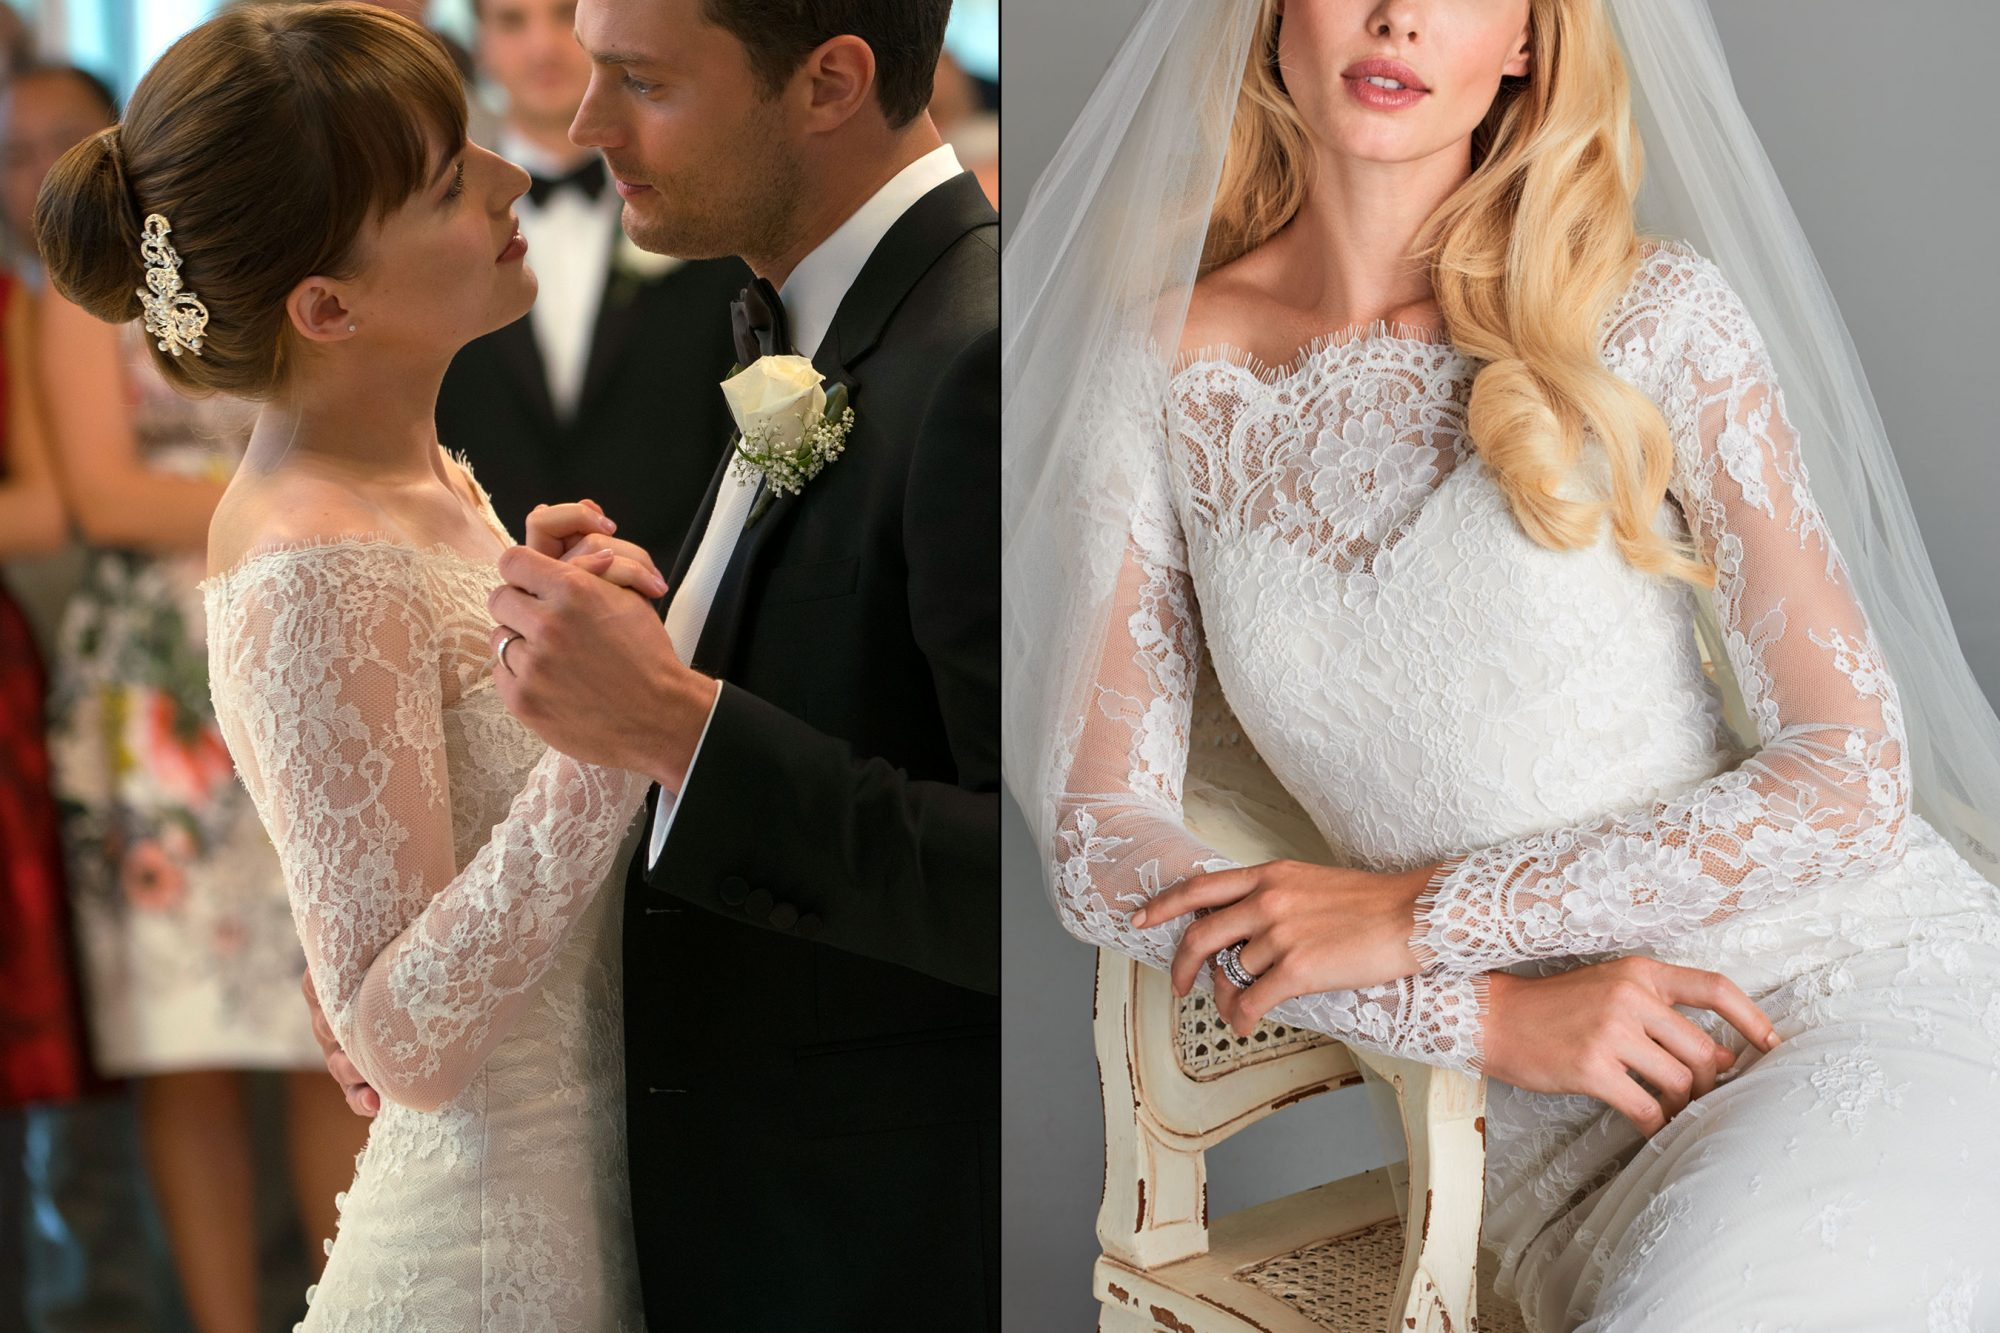 Anastasia Steele's (Dakota Johnson) wedding dress from Fifty Shades Freed